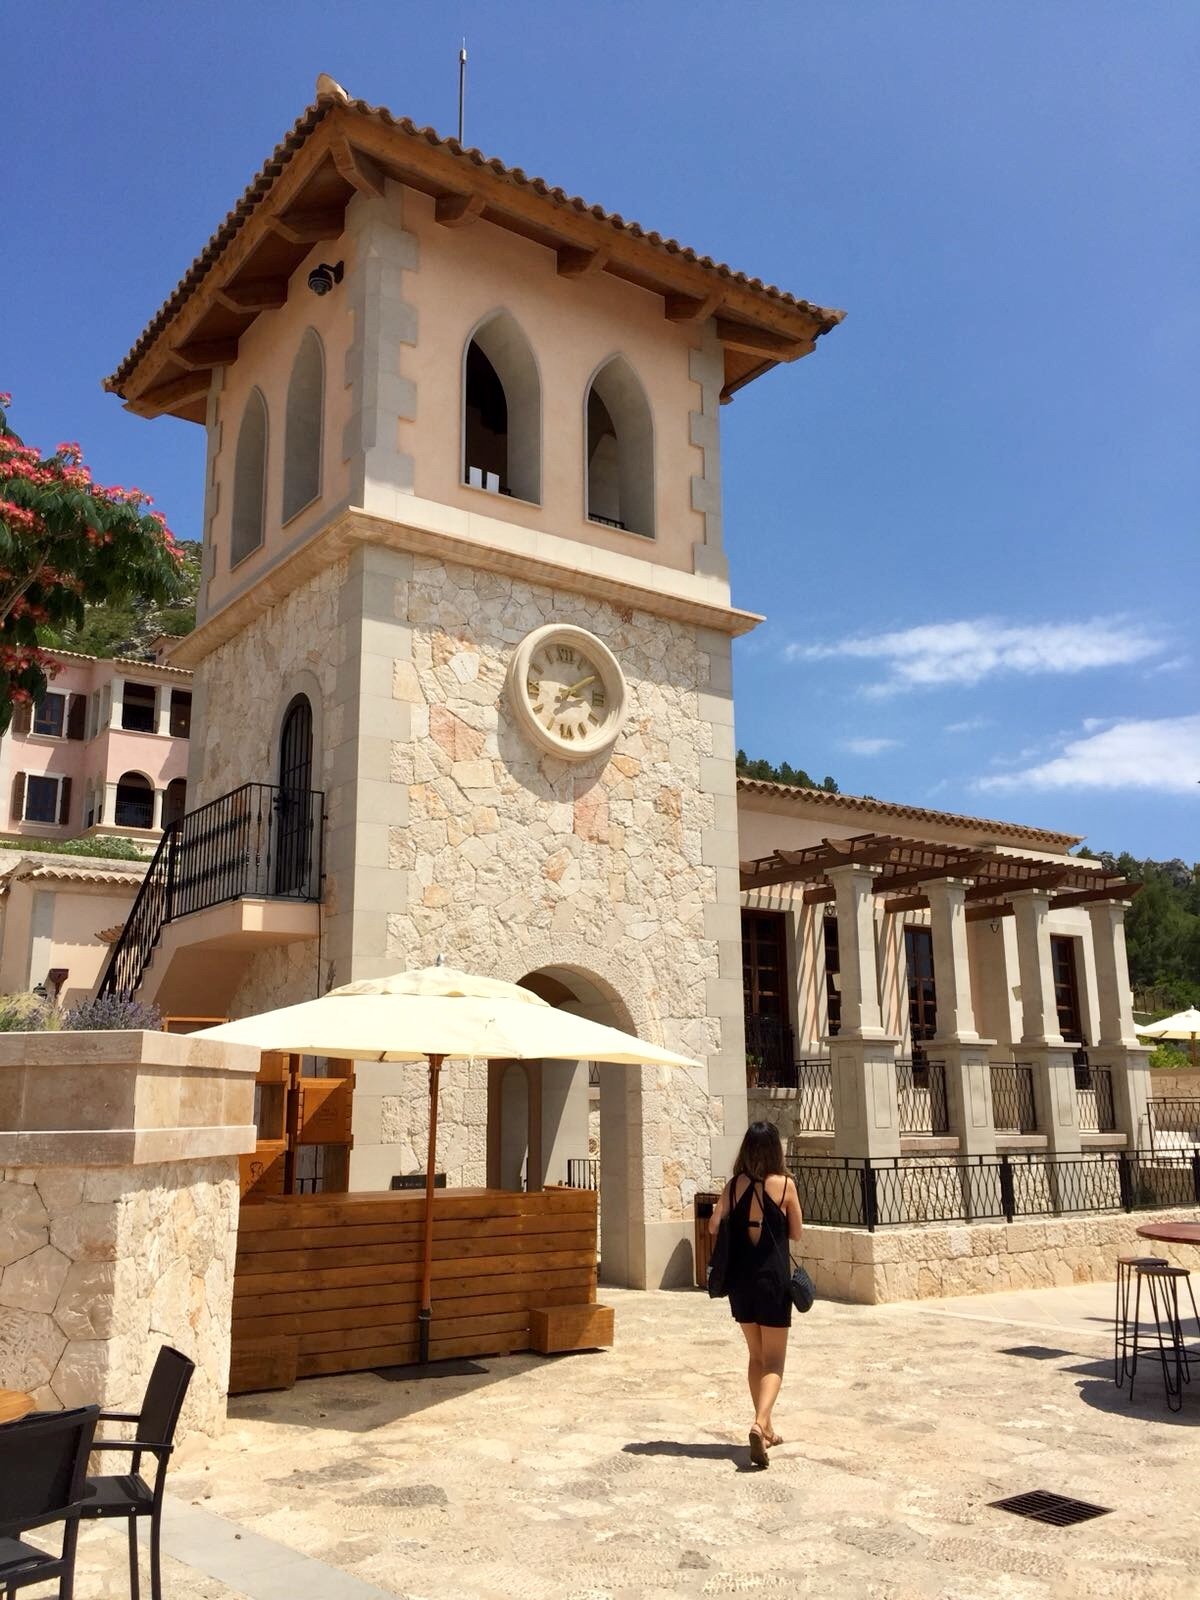 The tower at Park Hyatt Mallorca